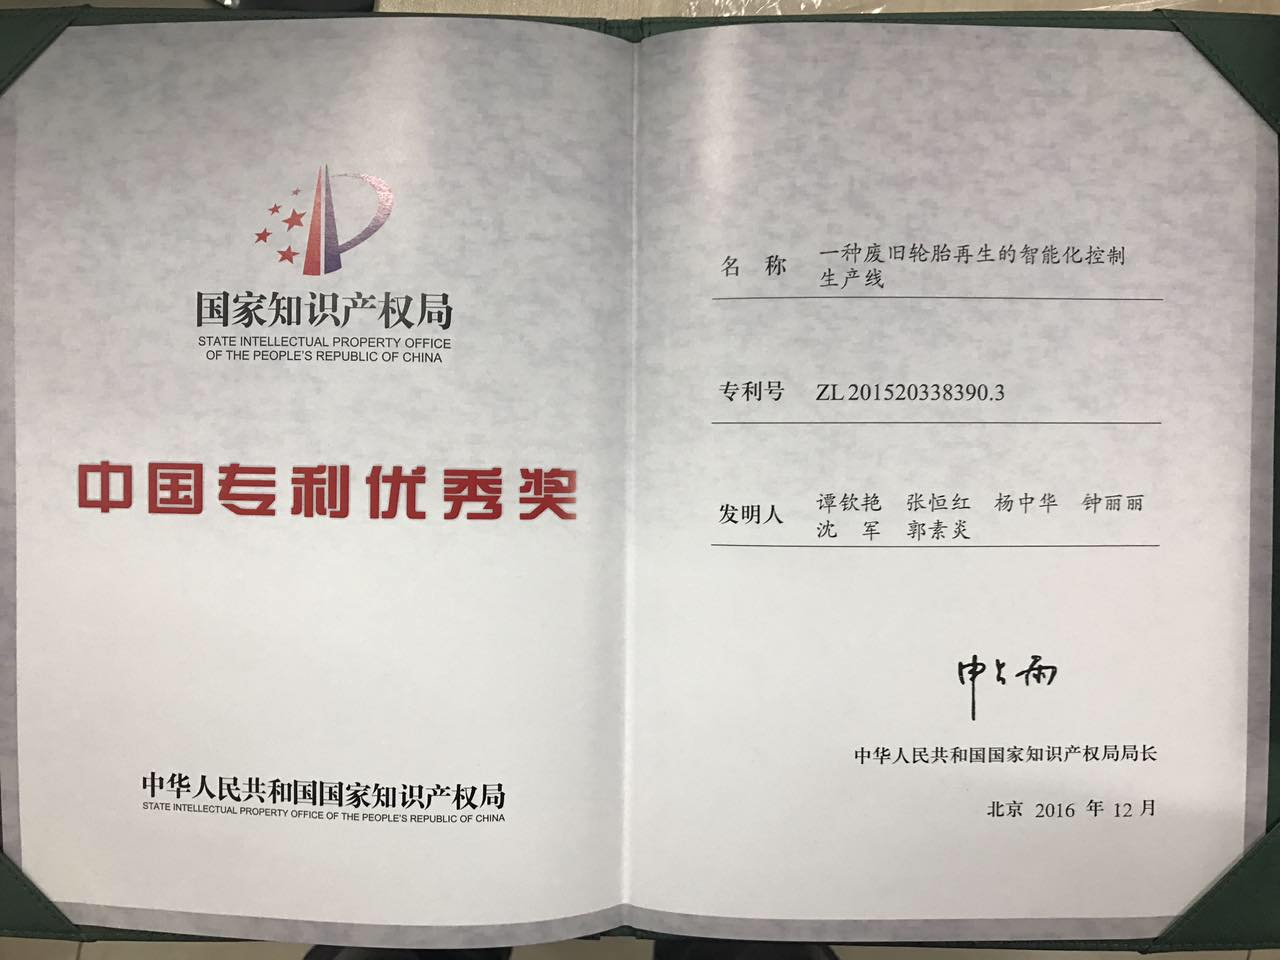 Chinese patent award of excellence